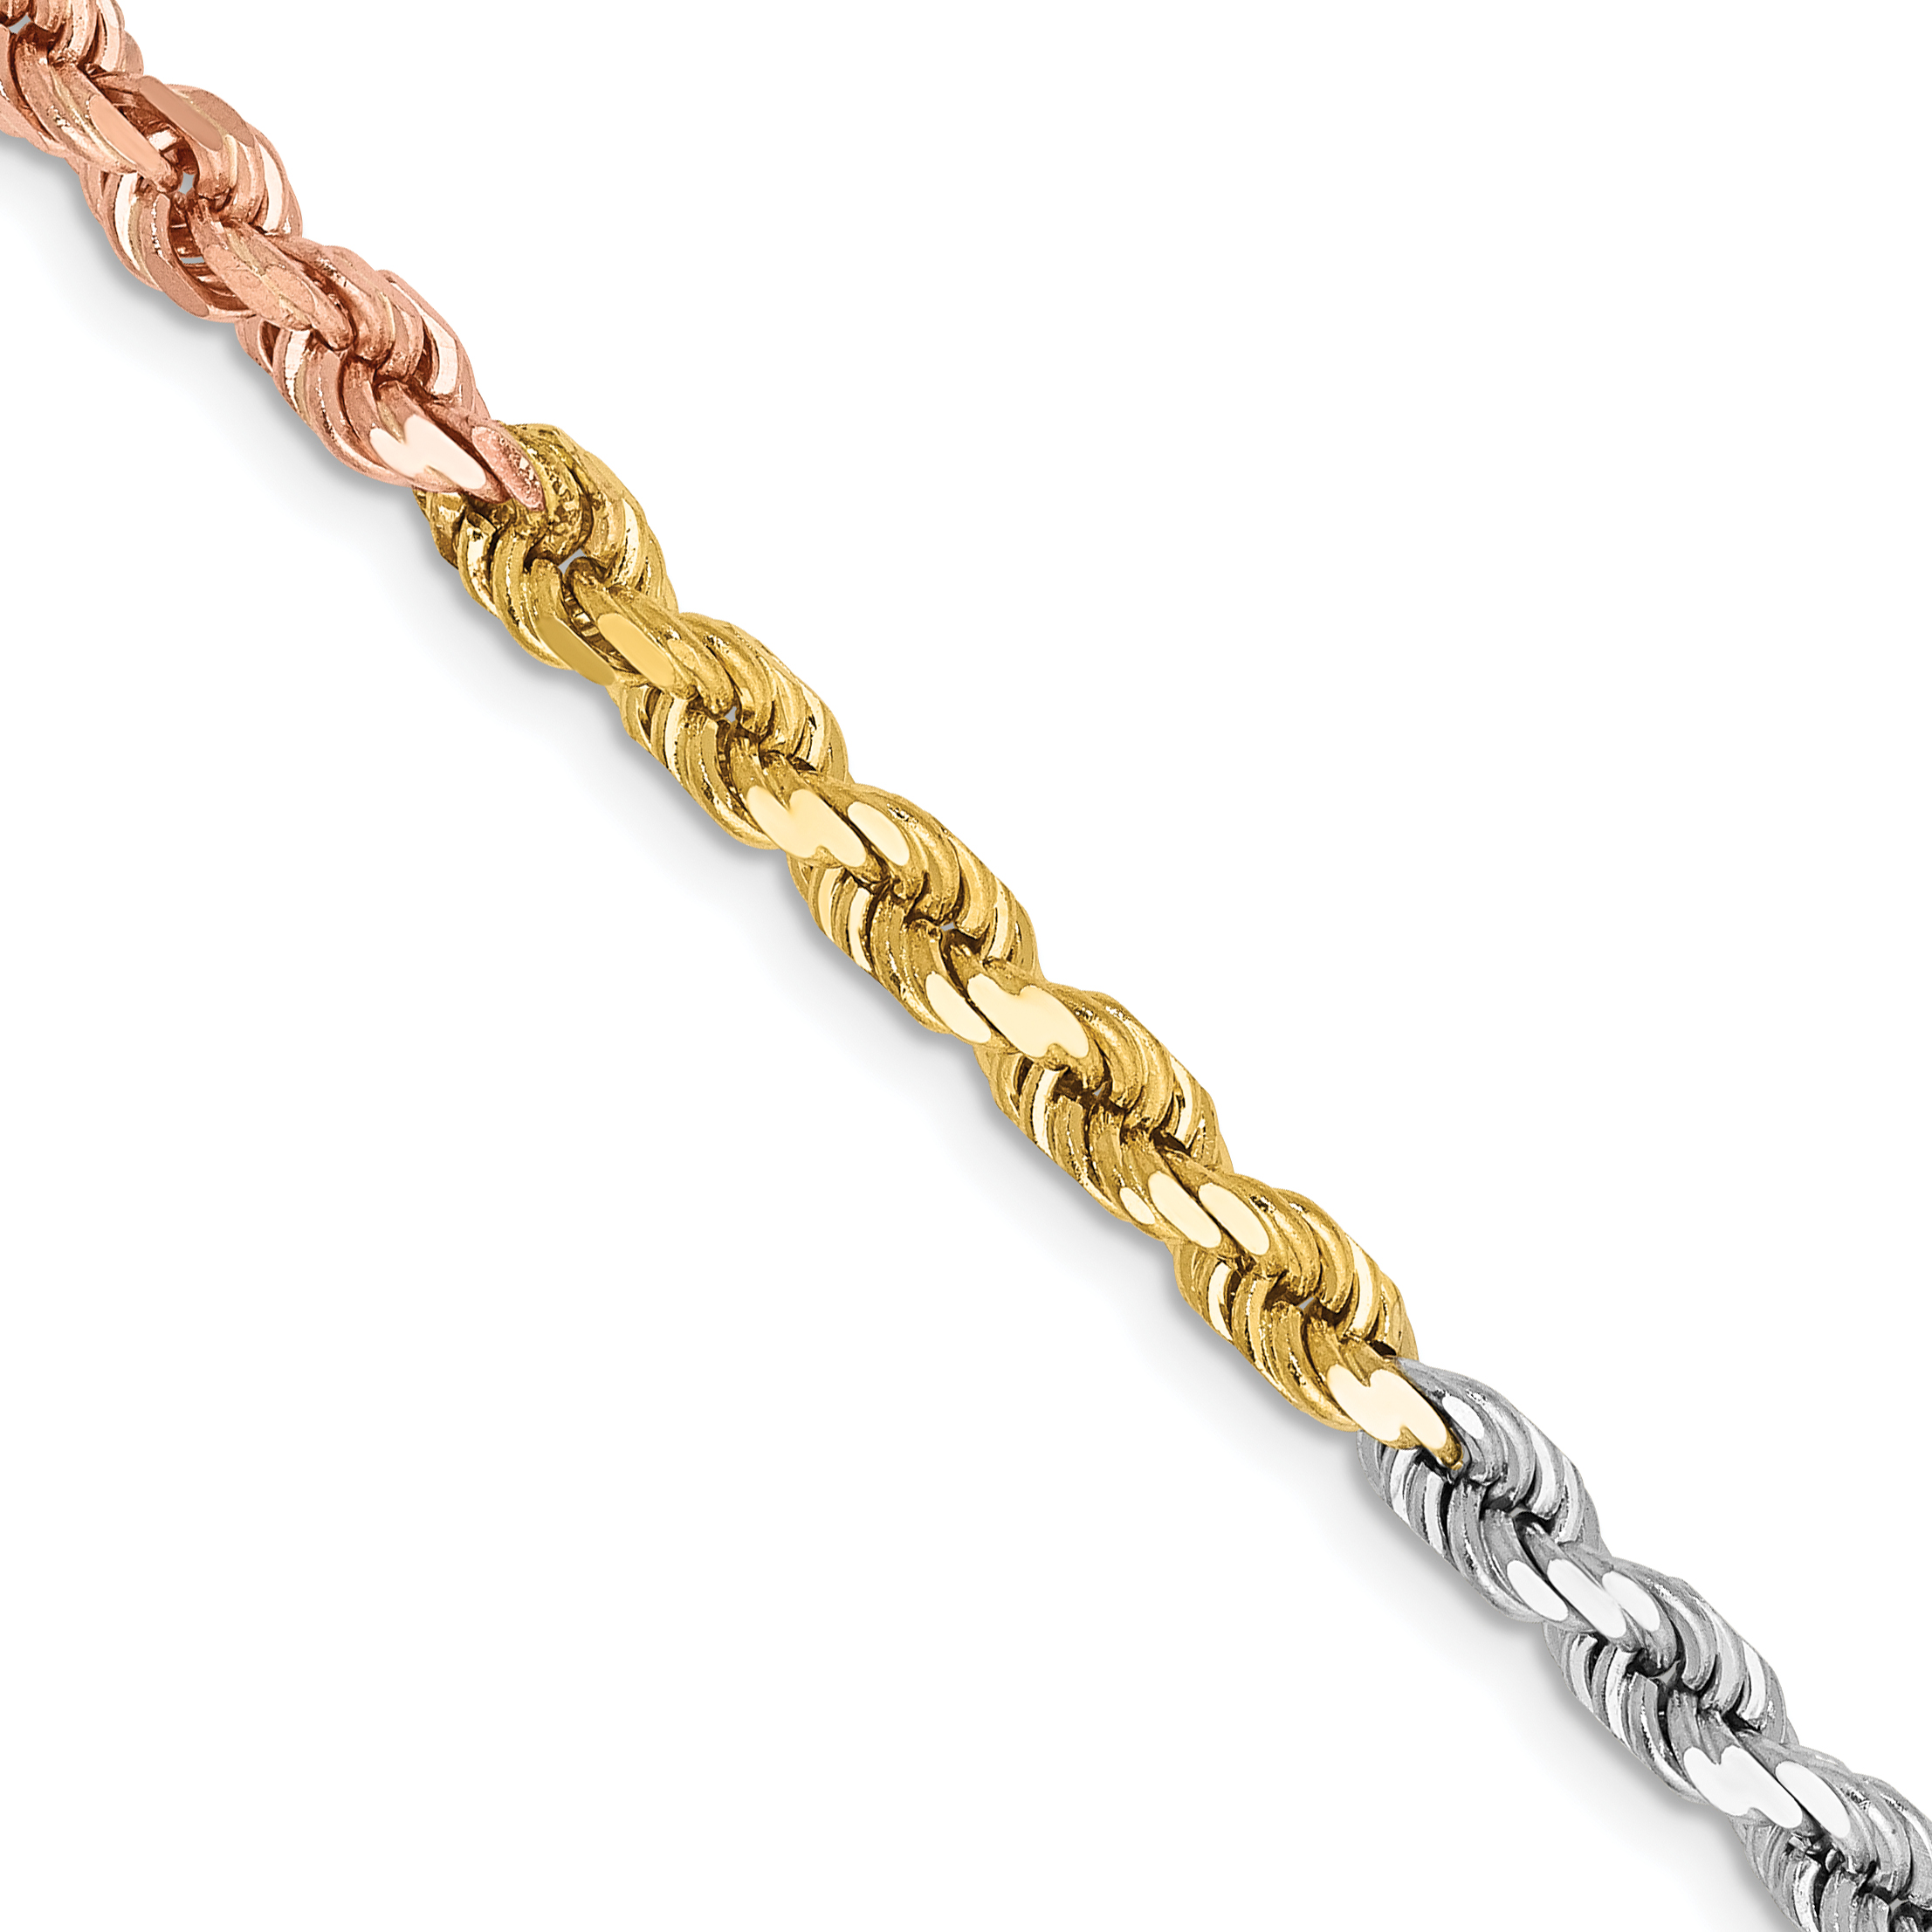 14k Tri-Color 4mm D/C Rope Chain. Weight: 23.35,  Length: 18